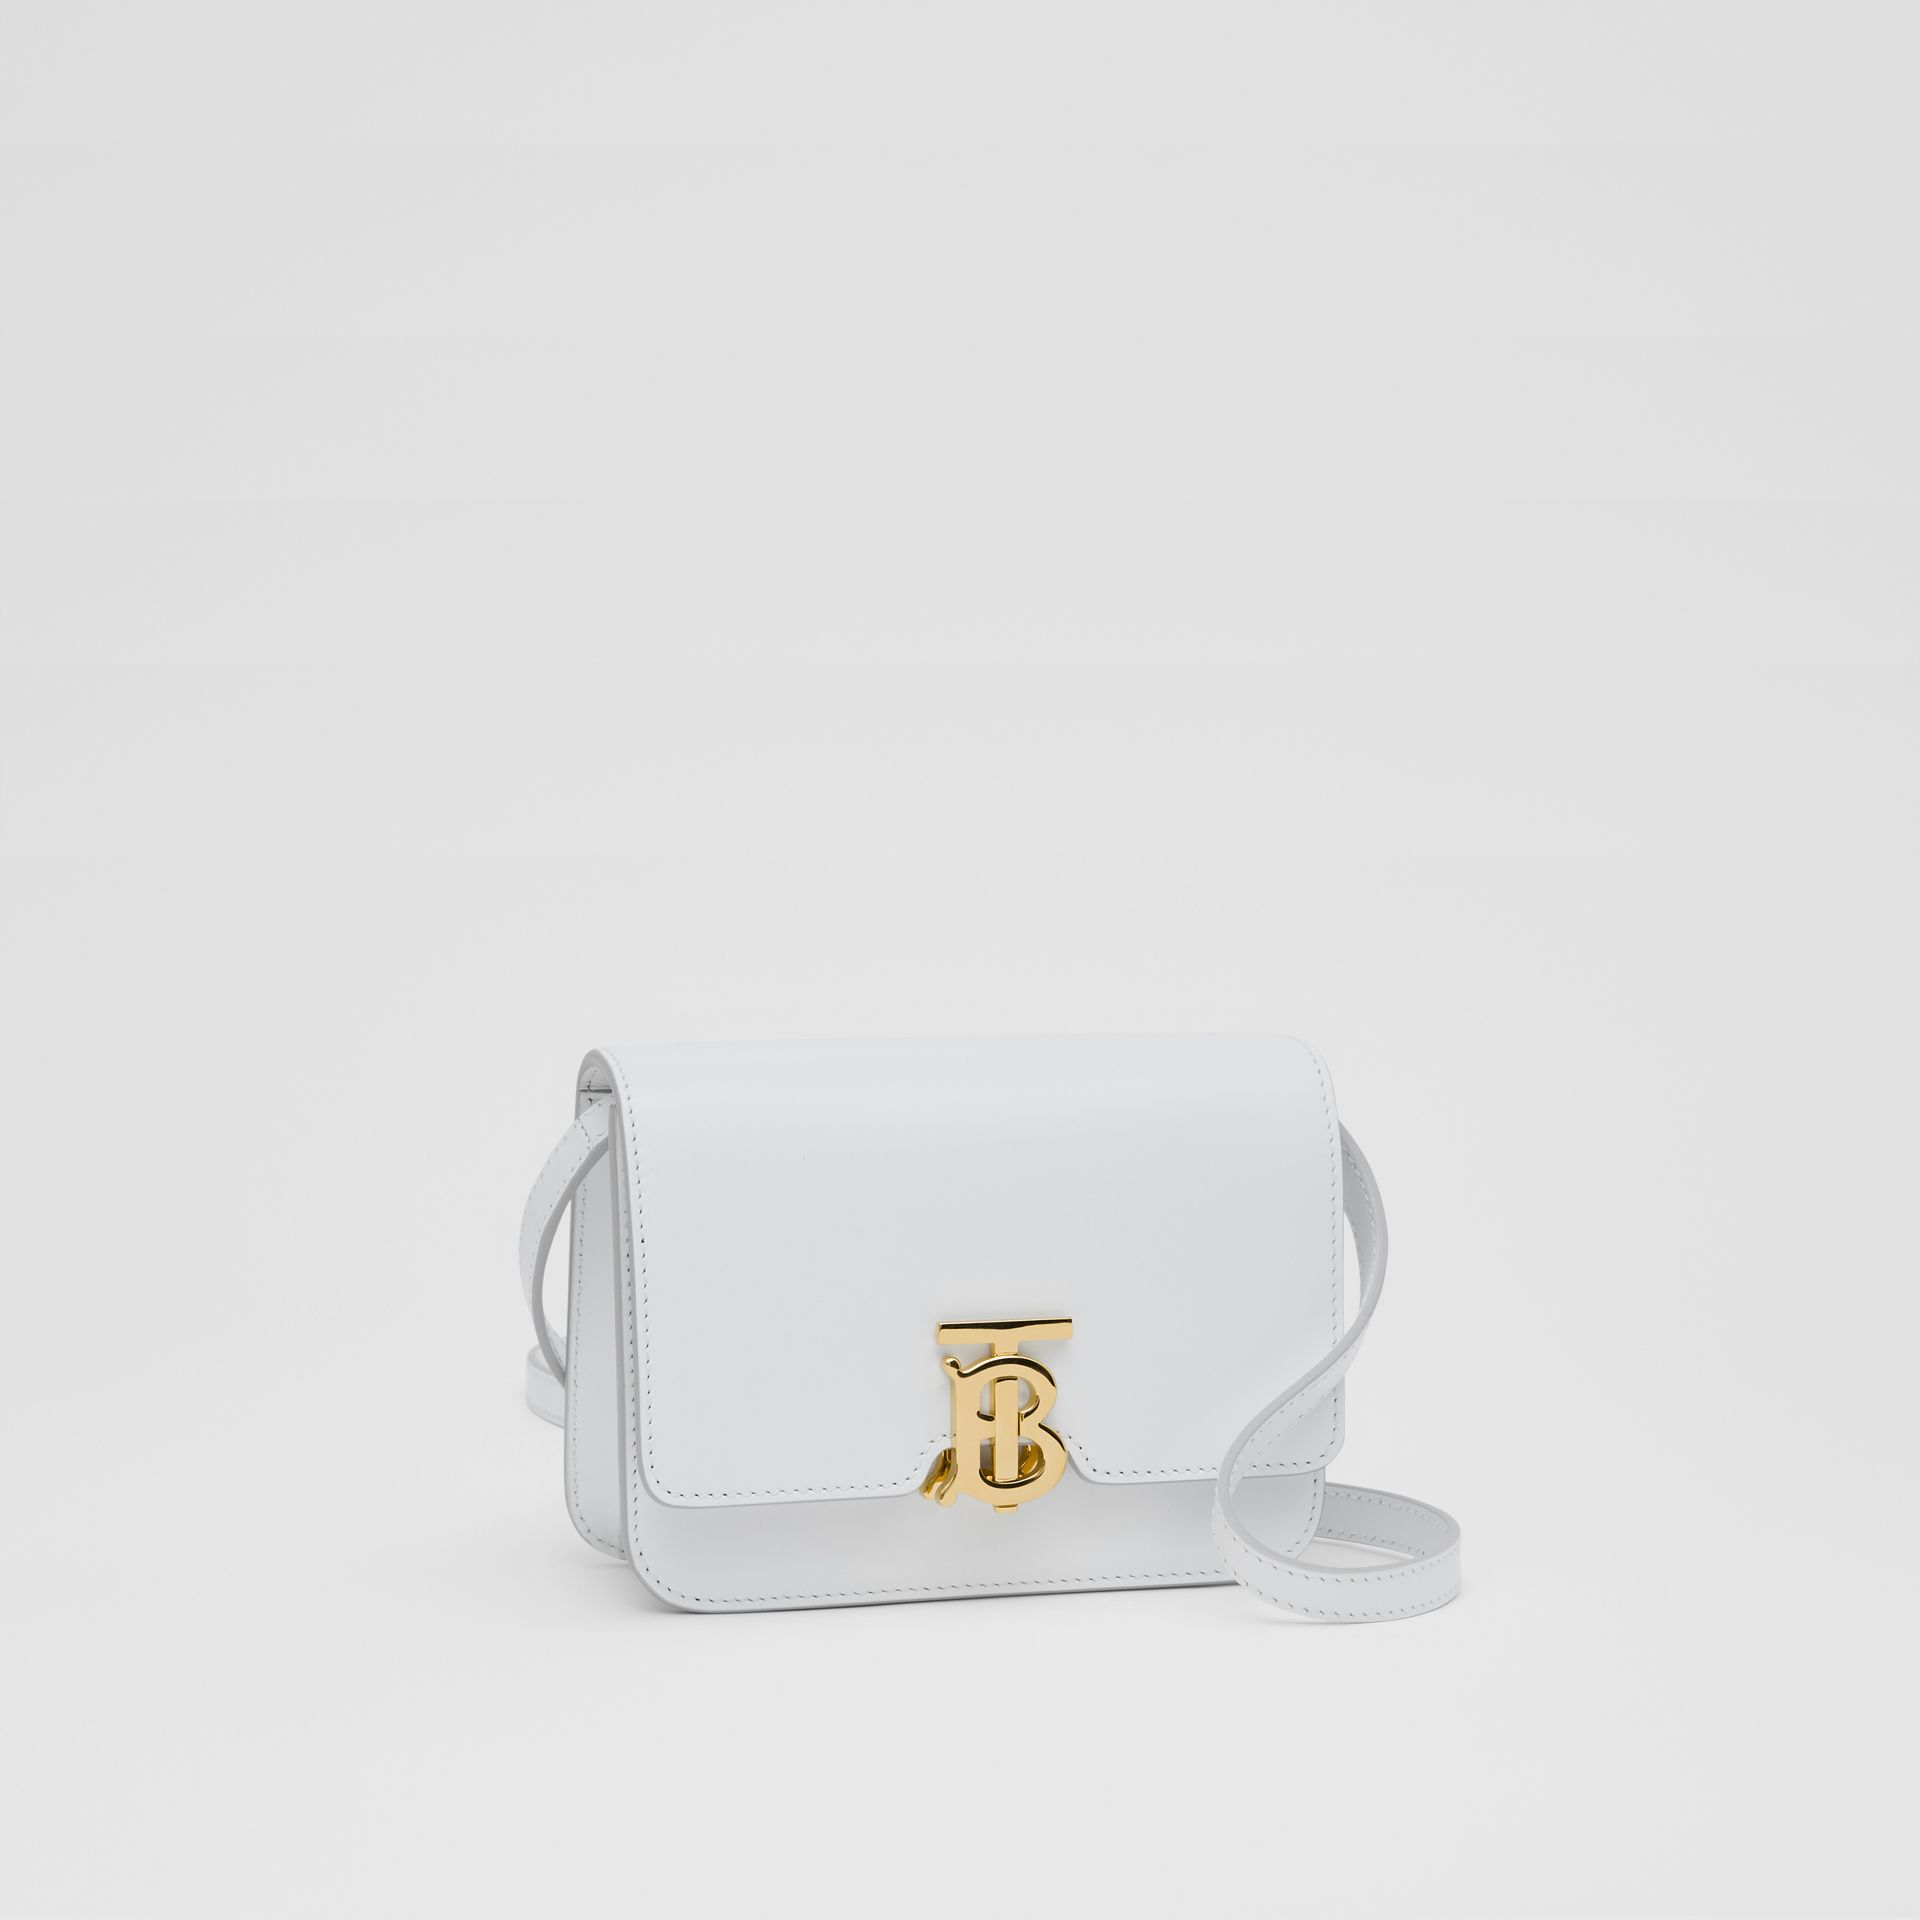 Mini sac TB en cuir (Blanc Optique) - Femme | Burberry - photo de la galerie 4